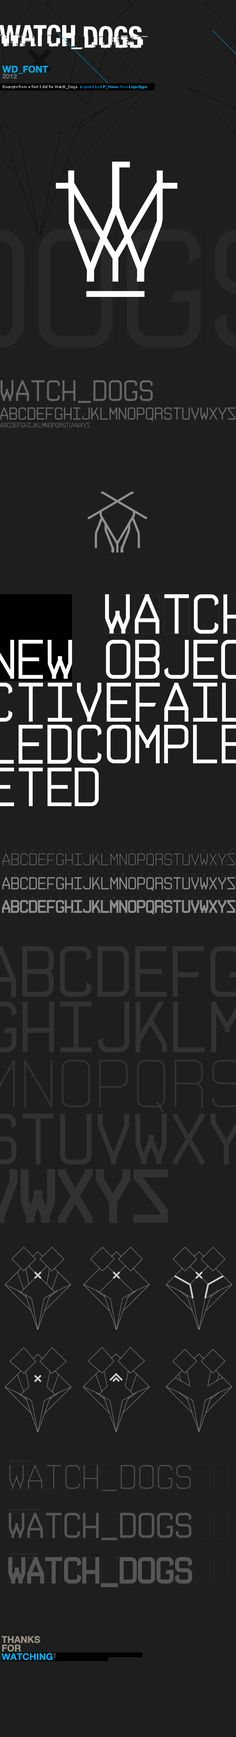 WATCH_DOGS : Fontwork by Timothe Lapetite, via Behance